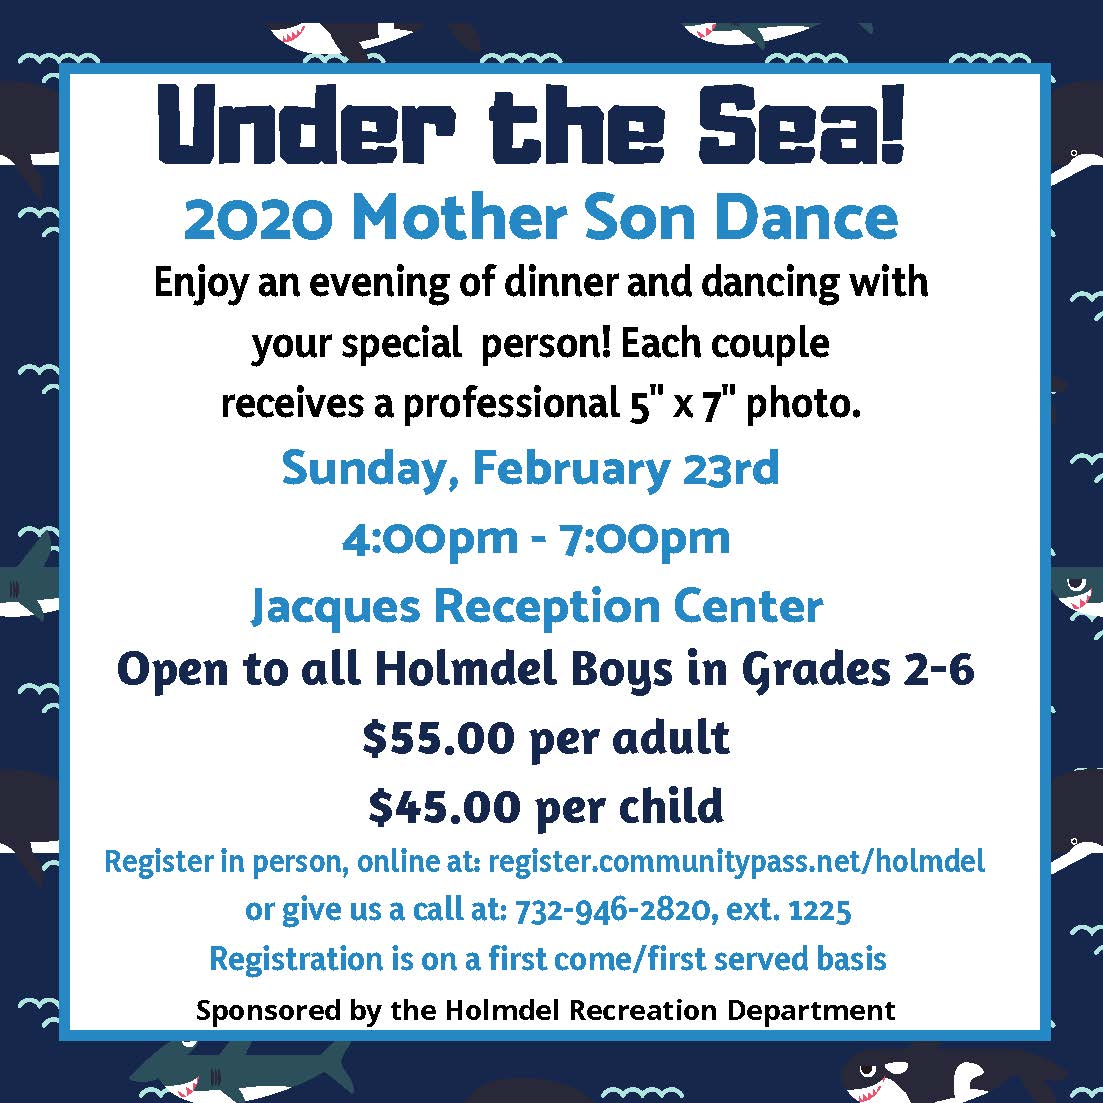 2020 Holmdel Recreation Mother Son Dance